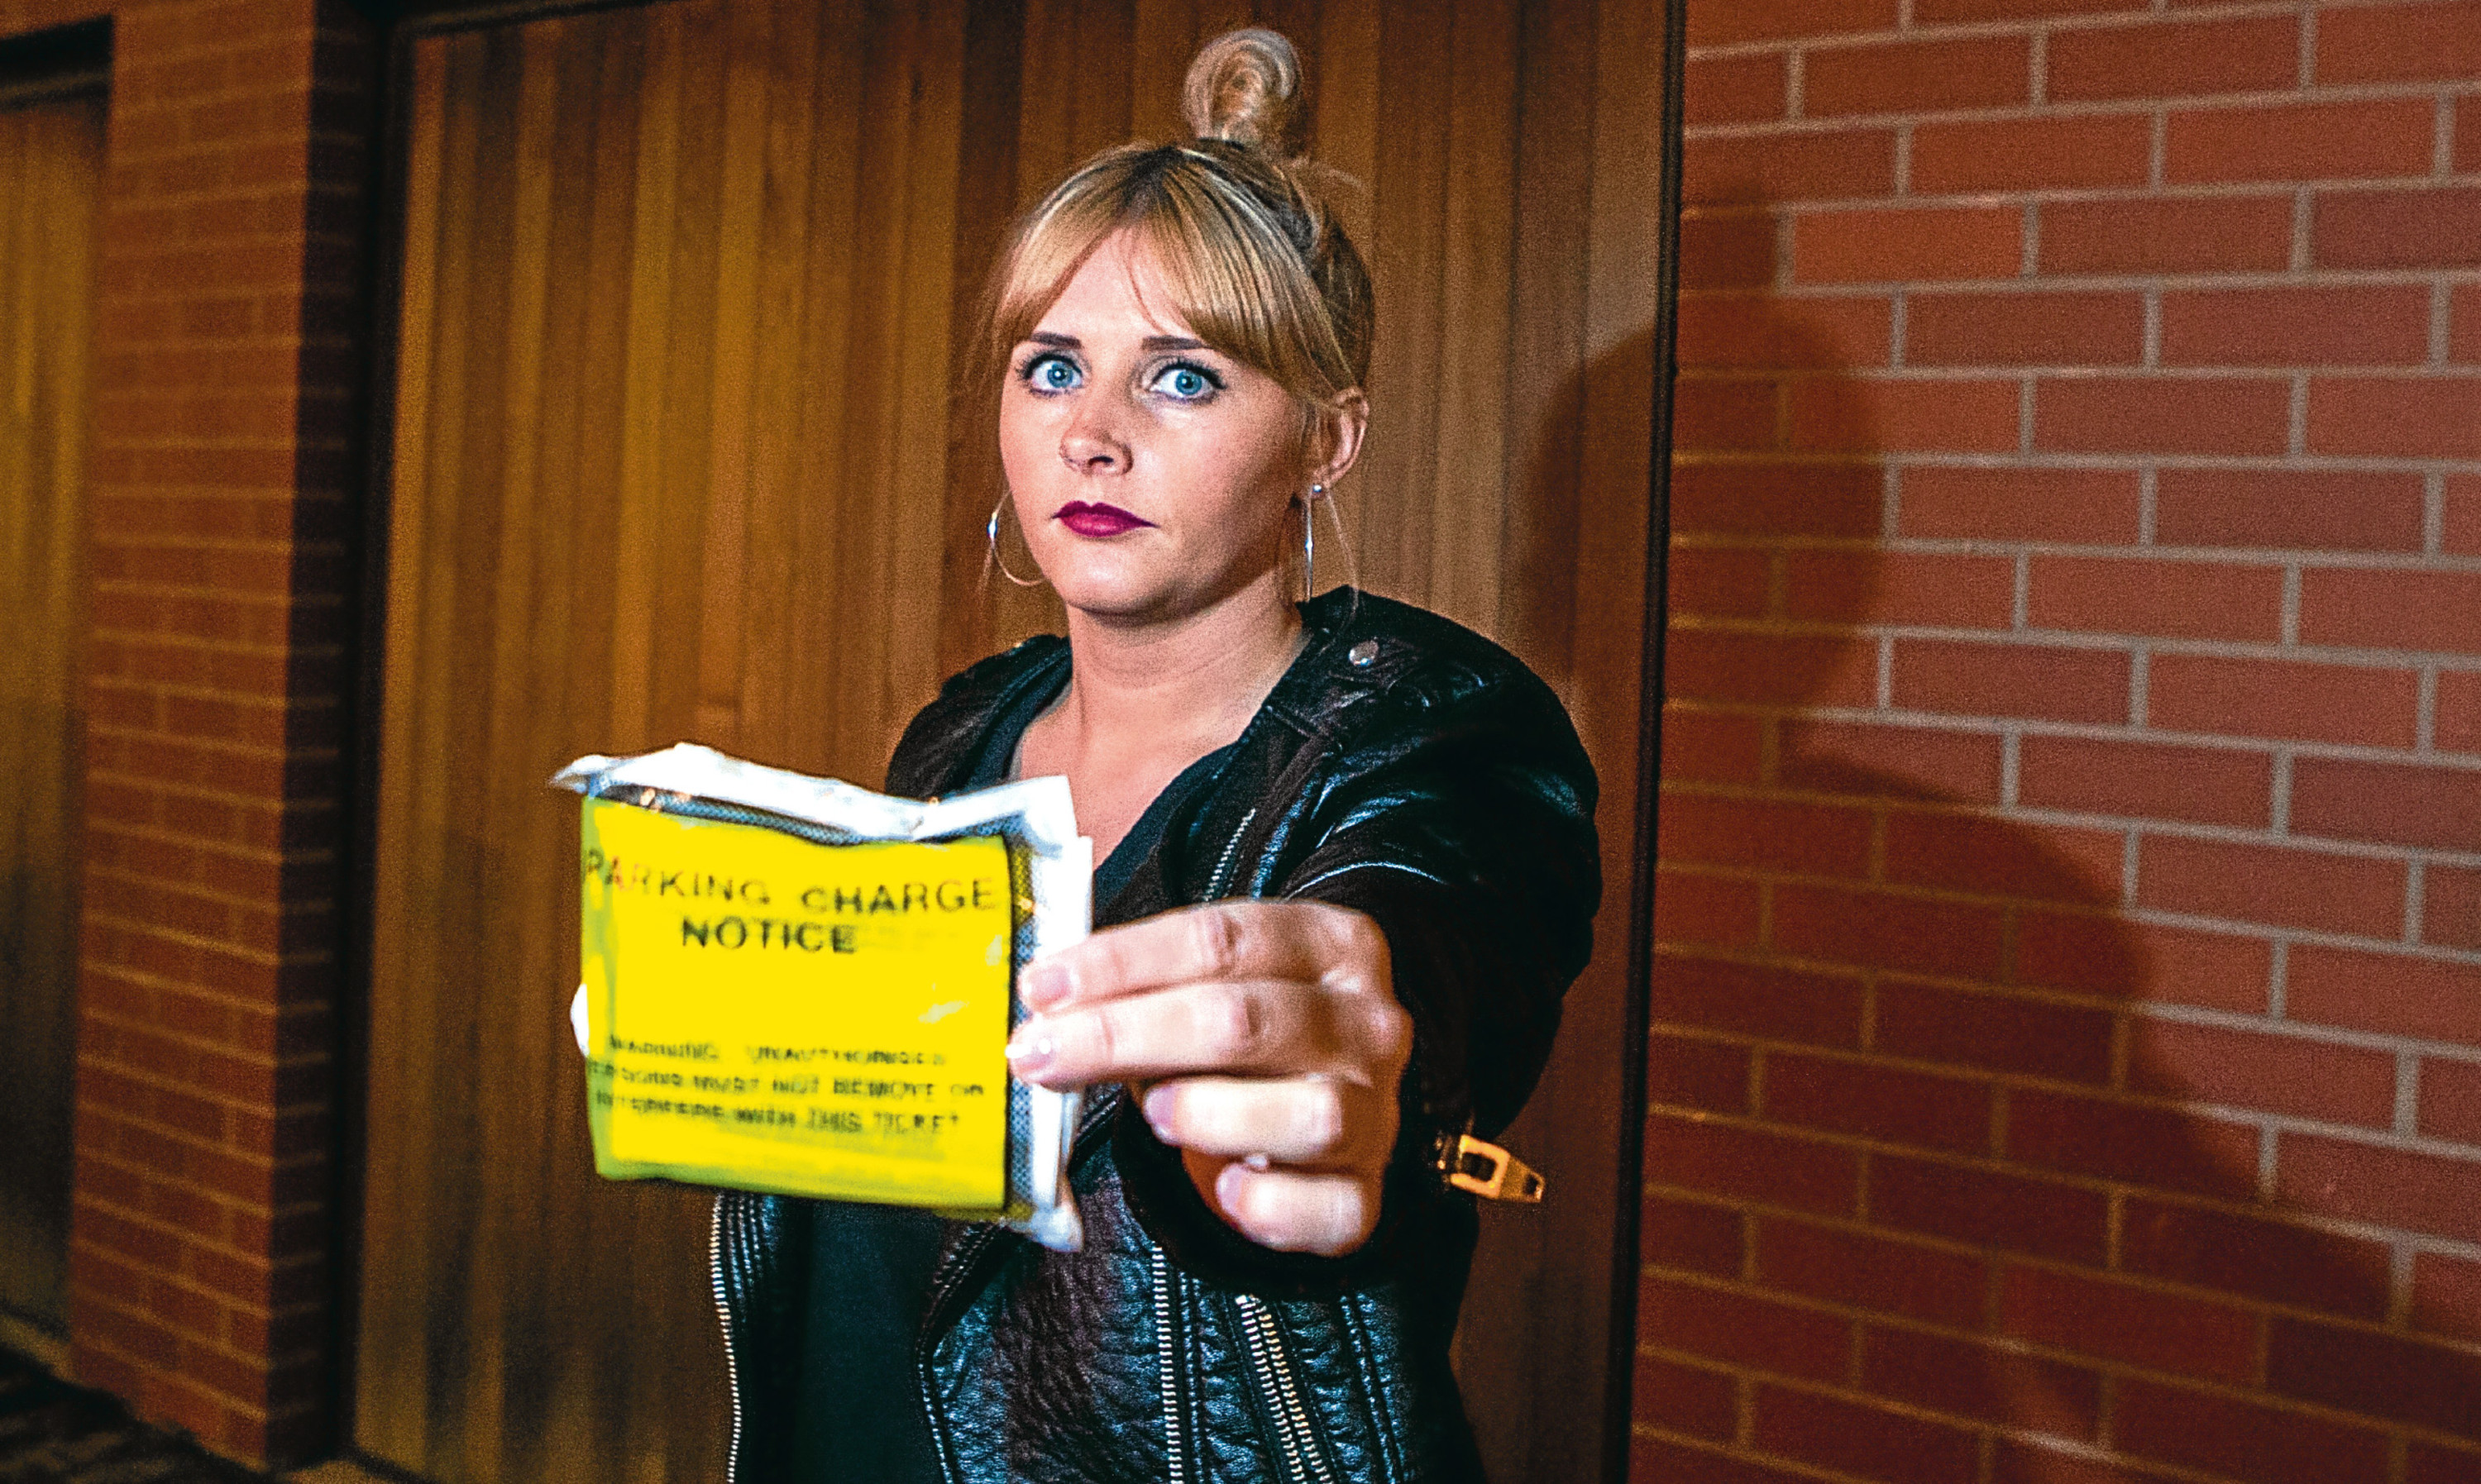 Carly Mackie has been slapped with a £24,500 parking fine.